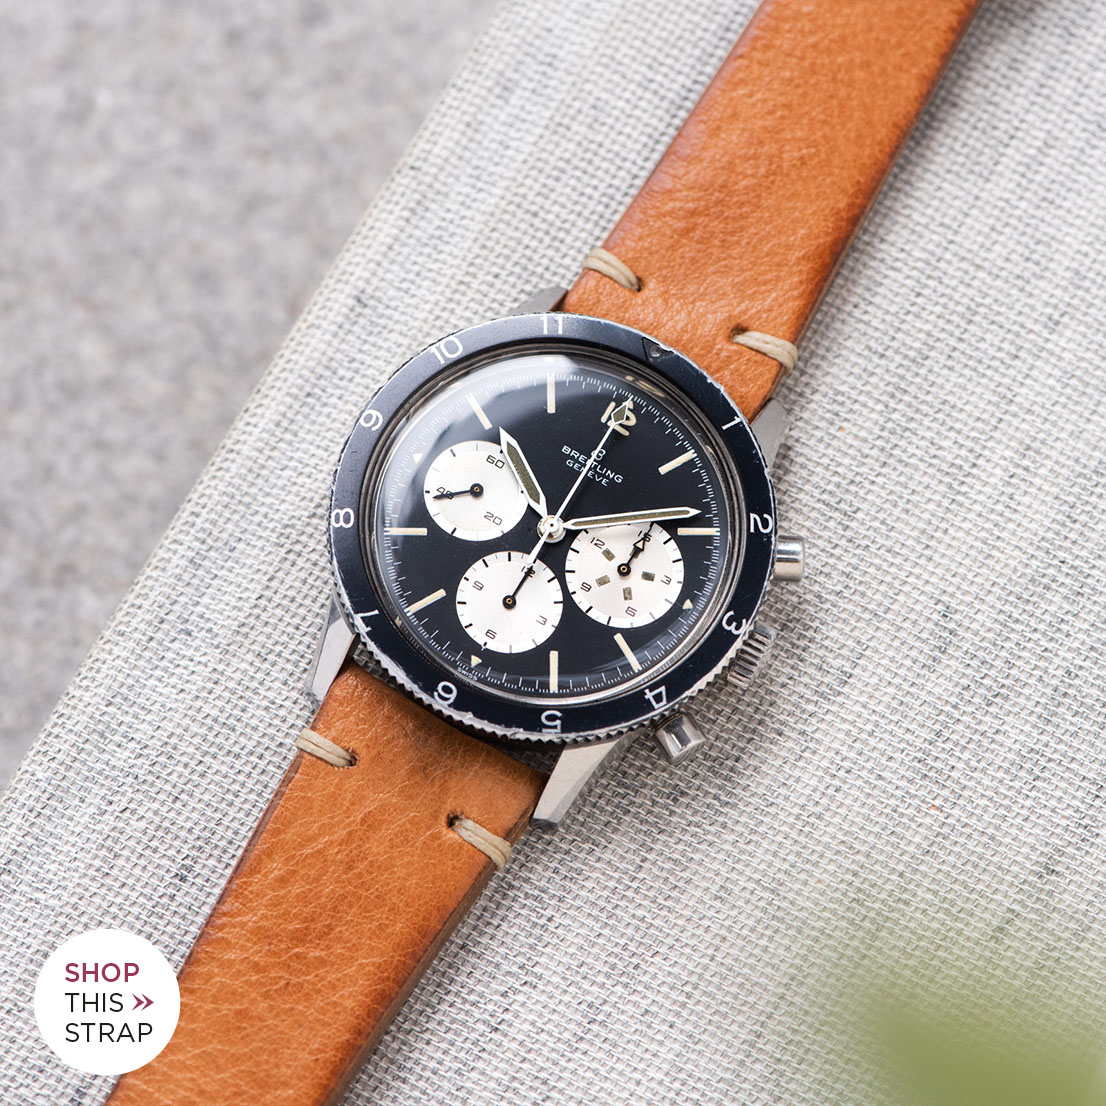 Bulang and Sons Strap Guide Breitling Co Pilot 7650 Chronograph